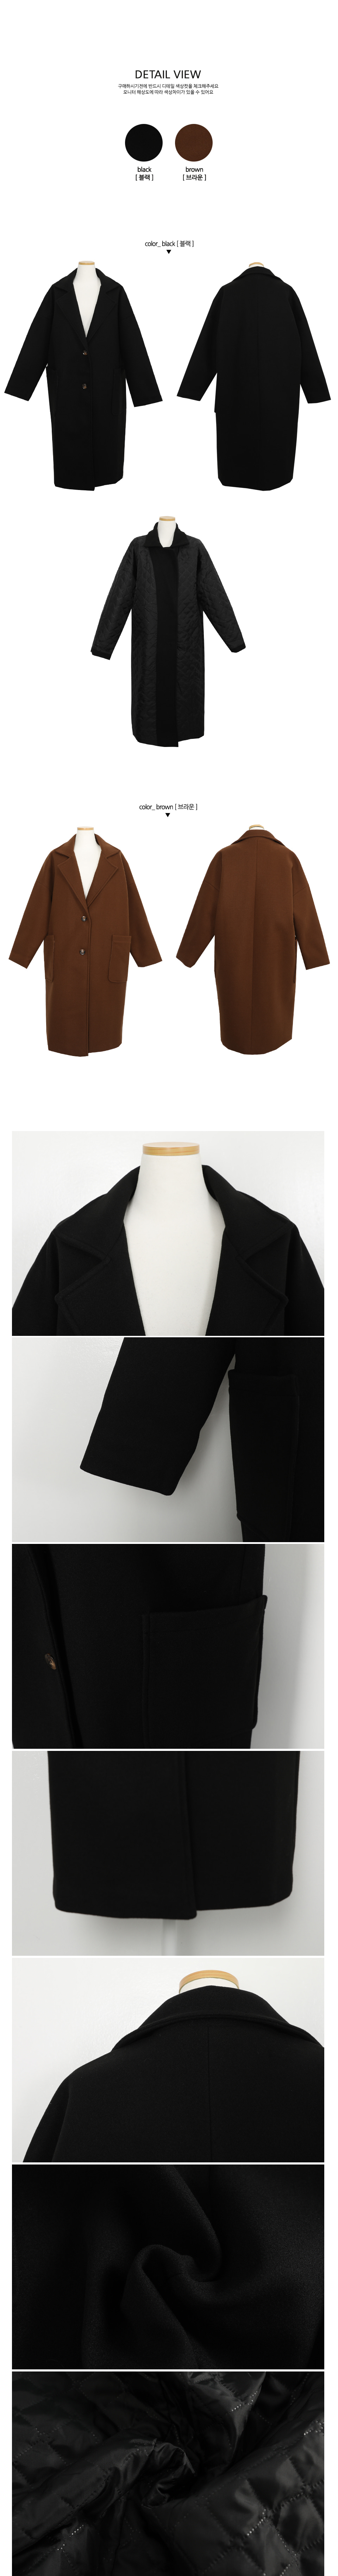 Loa wool quilted wool coat